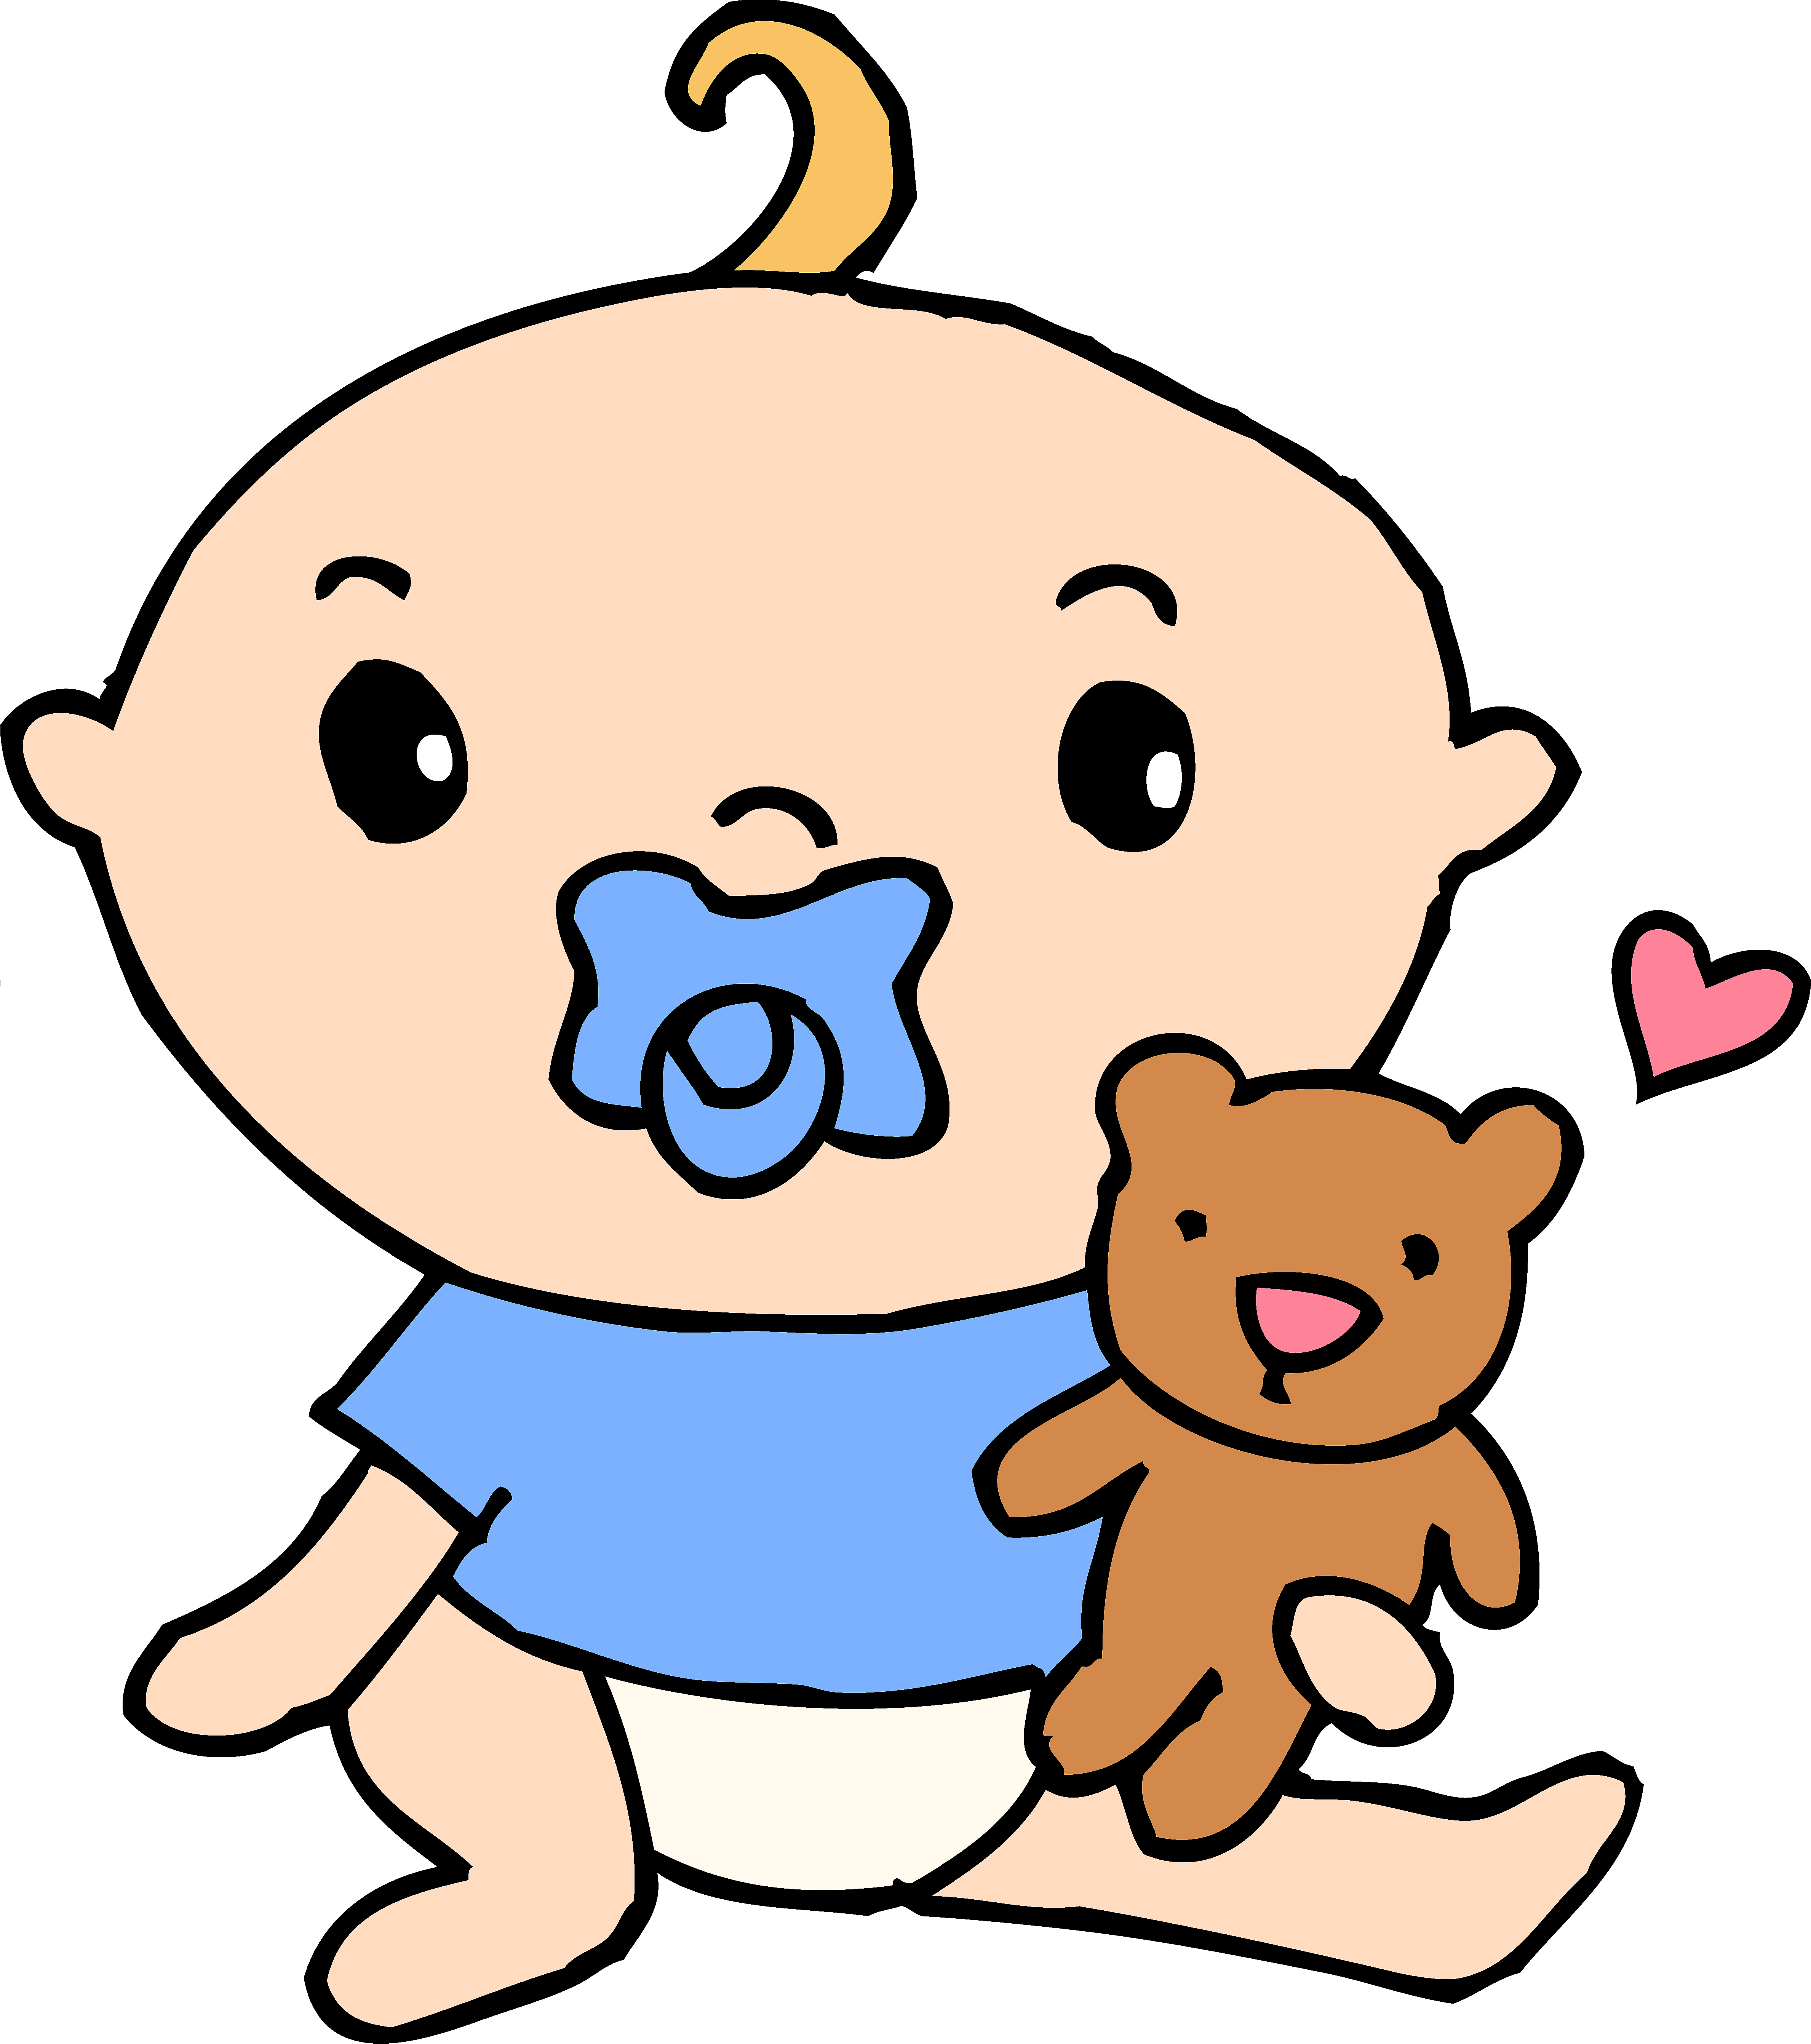 Infant clipart baby dummy. Homemade popeye costume with